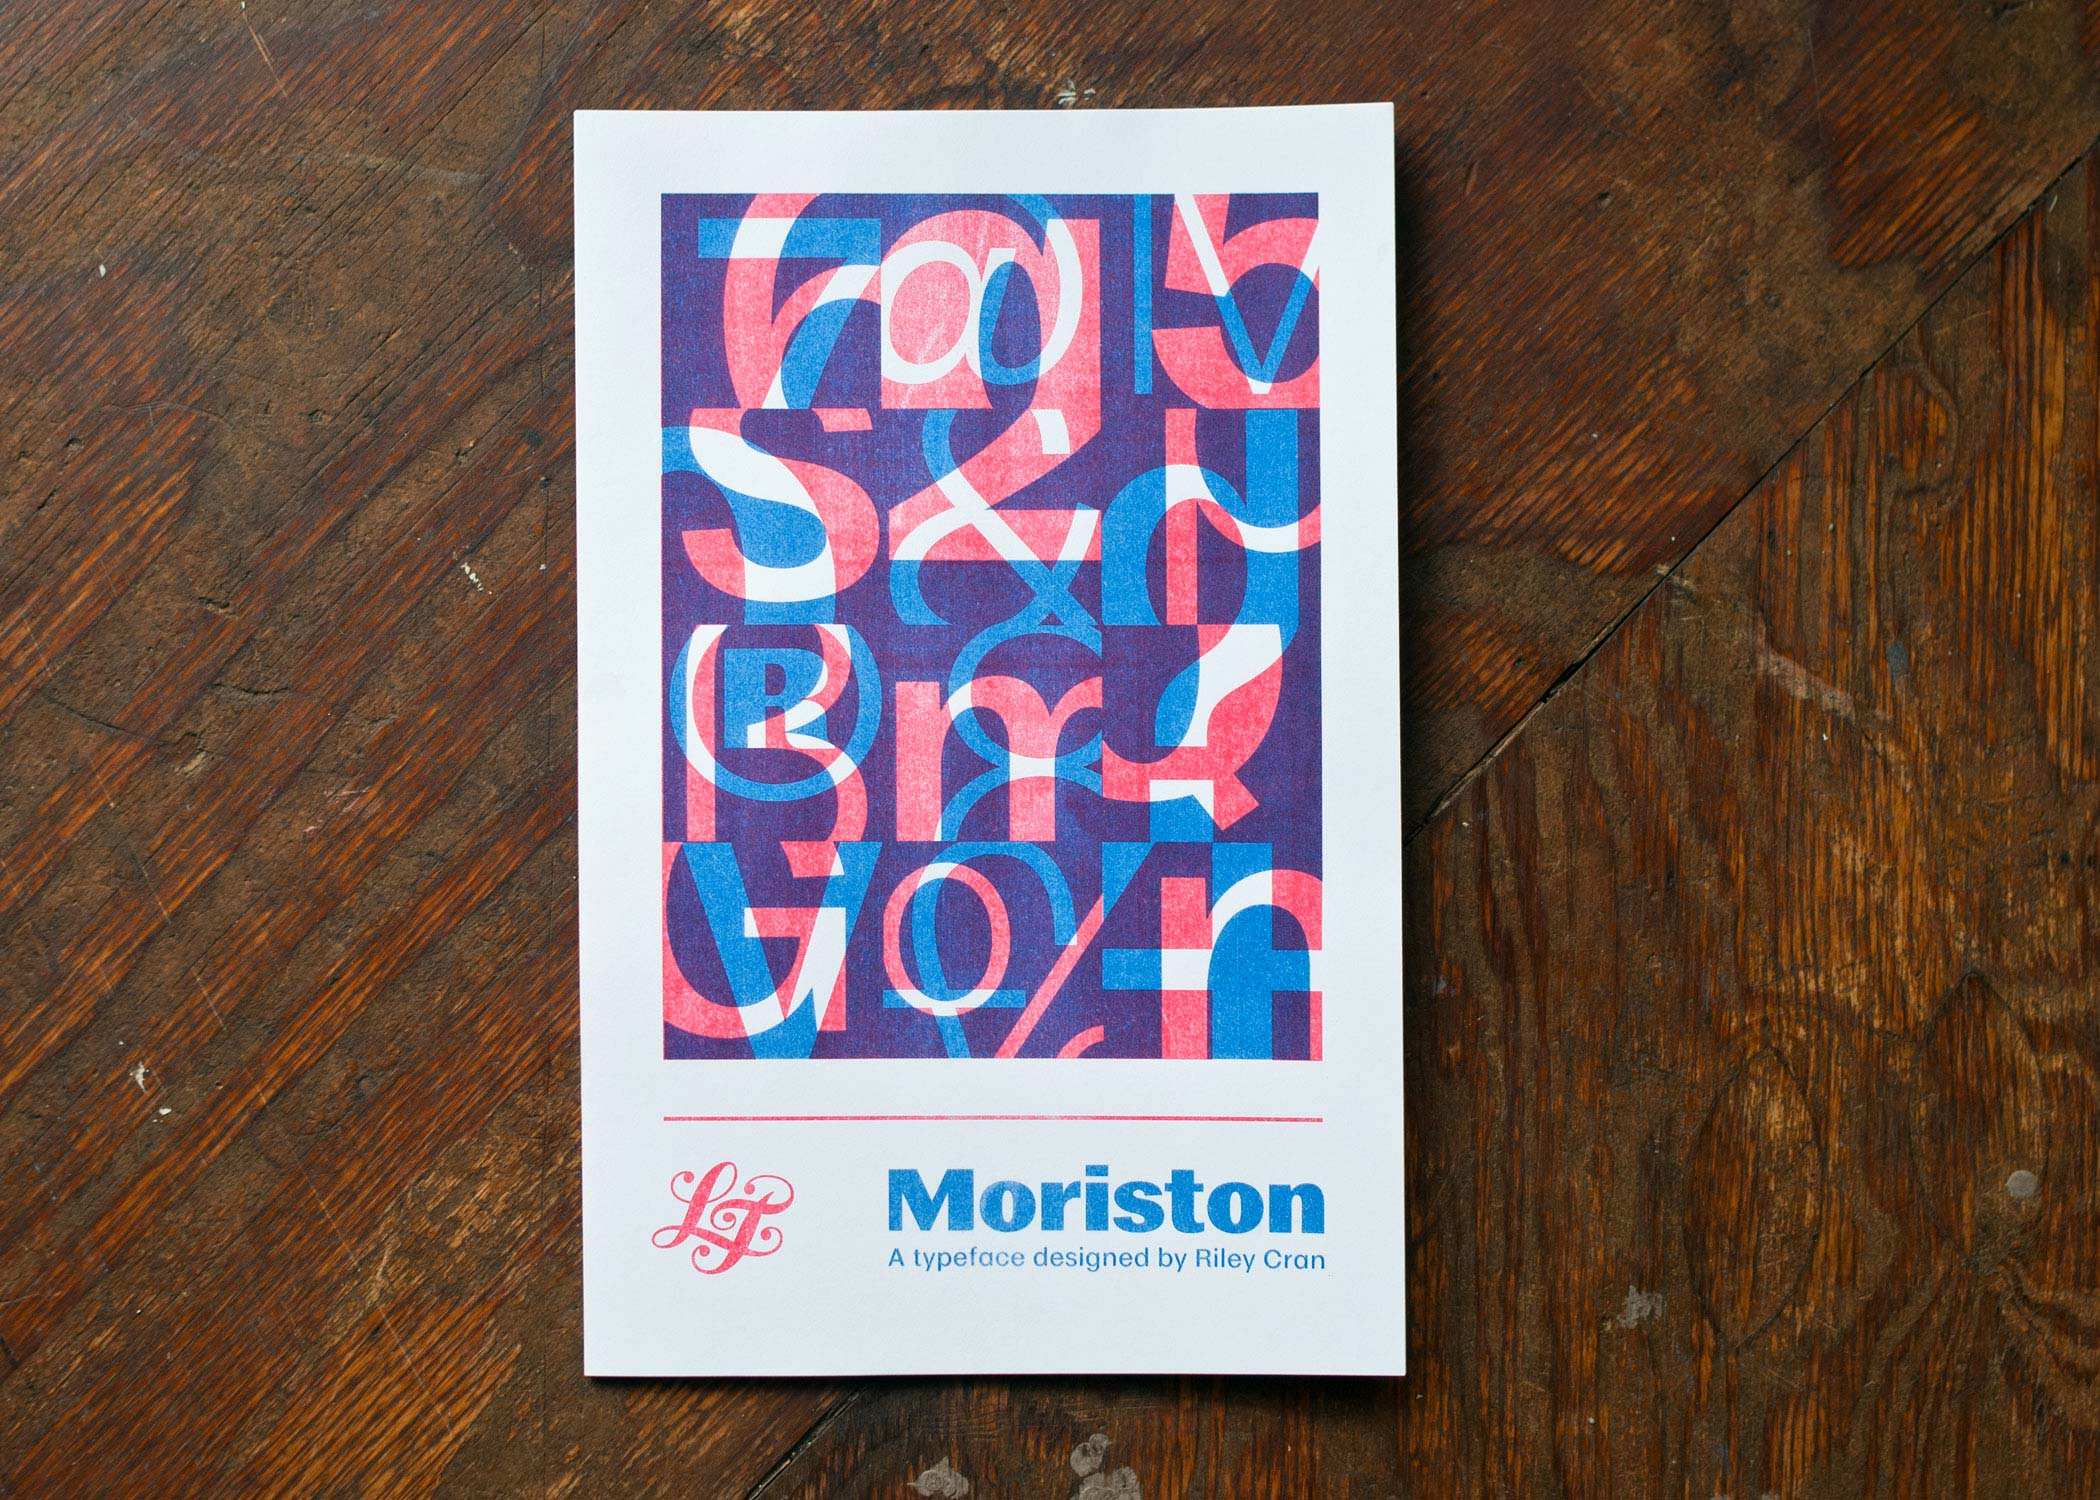 moriston-riso-photo-1